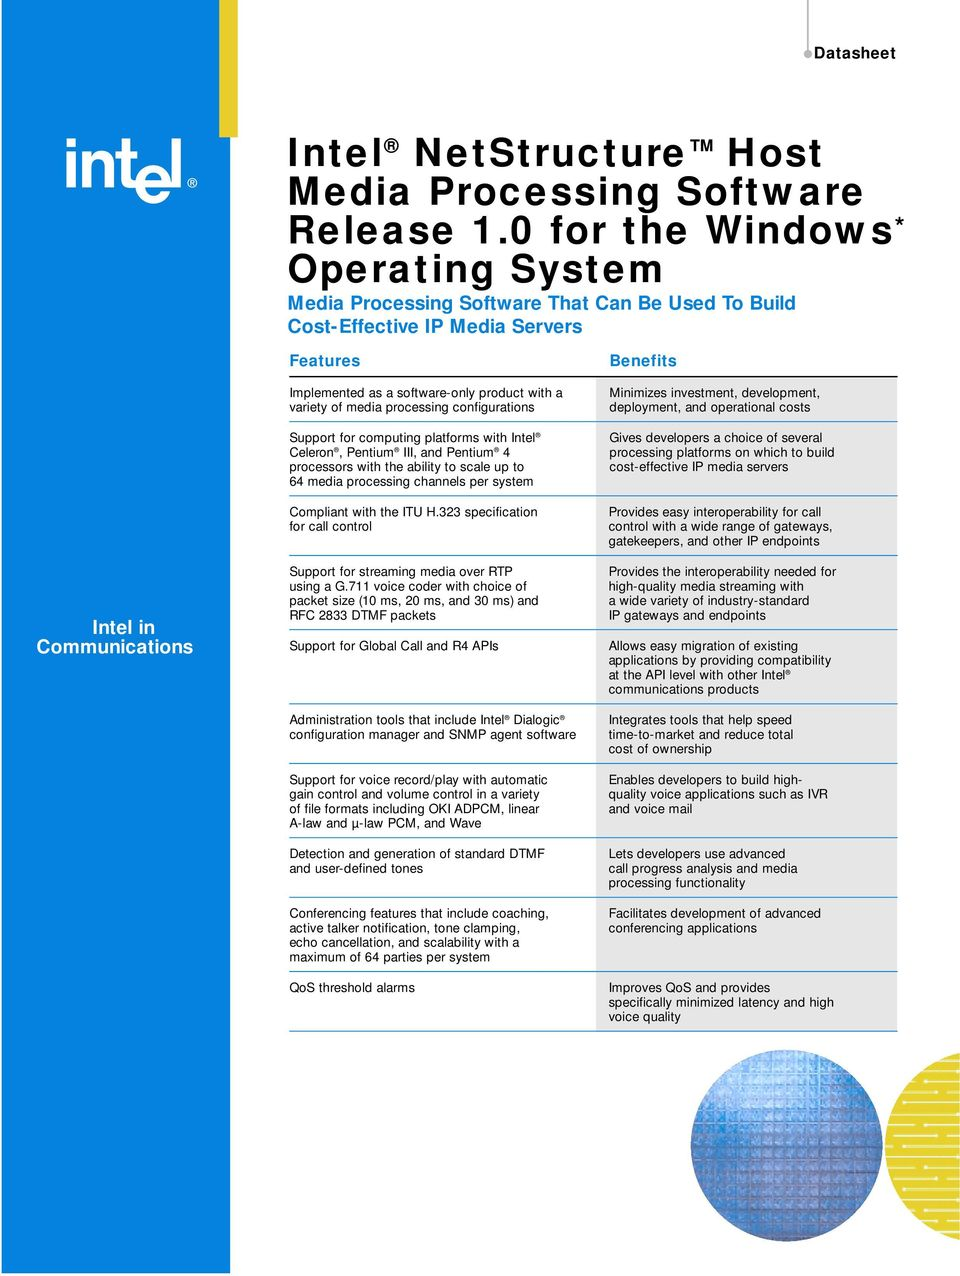 product with a variety of media processing configurations Support for computing platforms with Intel Celeron, Pentium III, and Pentium 4 processors with the ability to scale up to 64 media processing